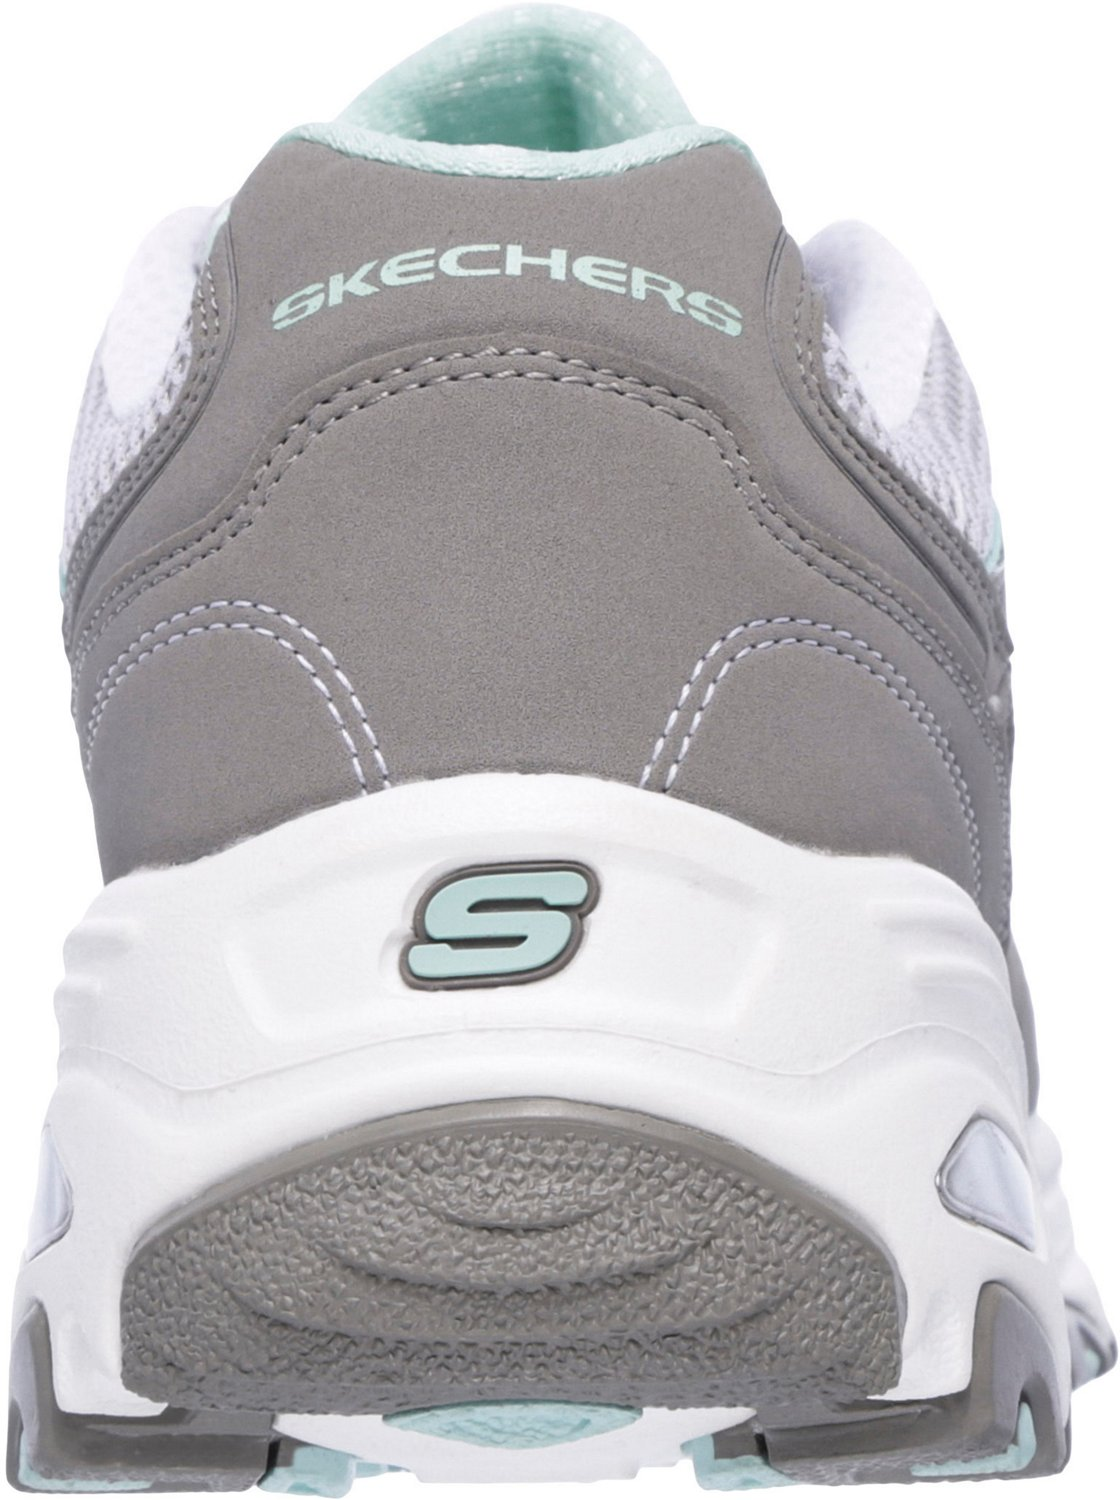 SKECHERS Women's D'Lites Life Saver Shoes - view number 6